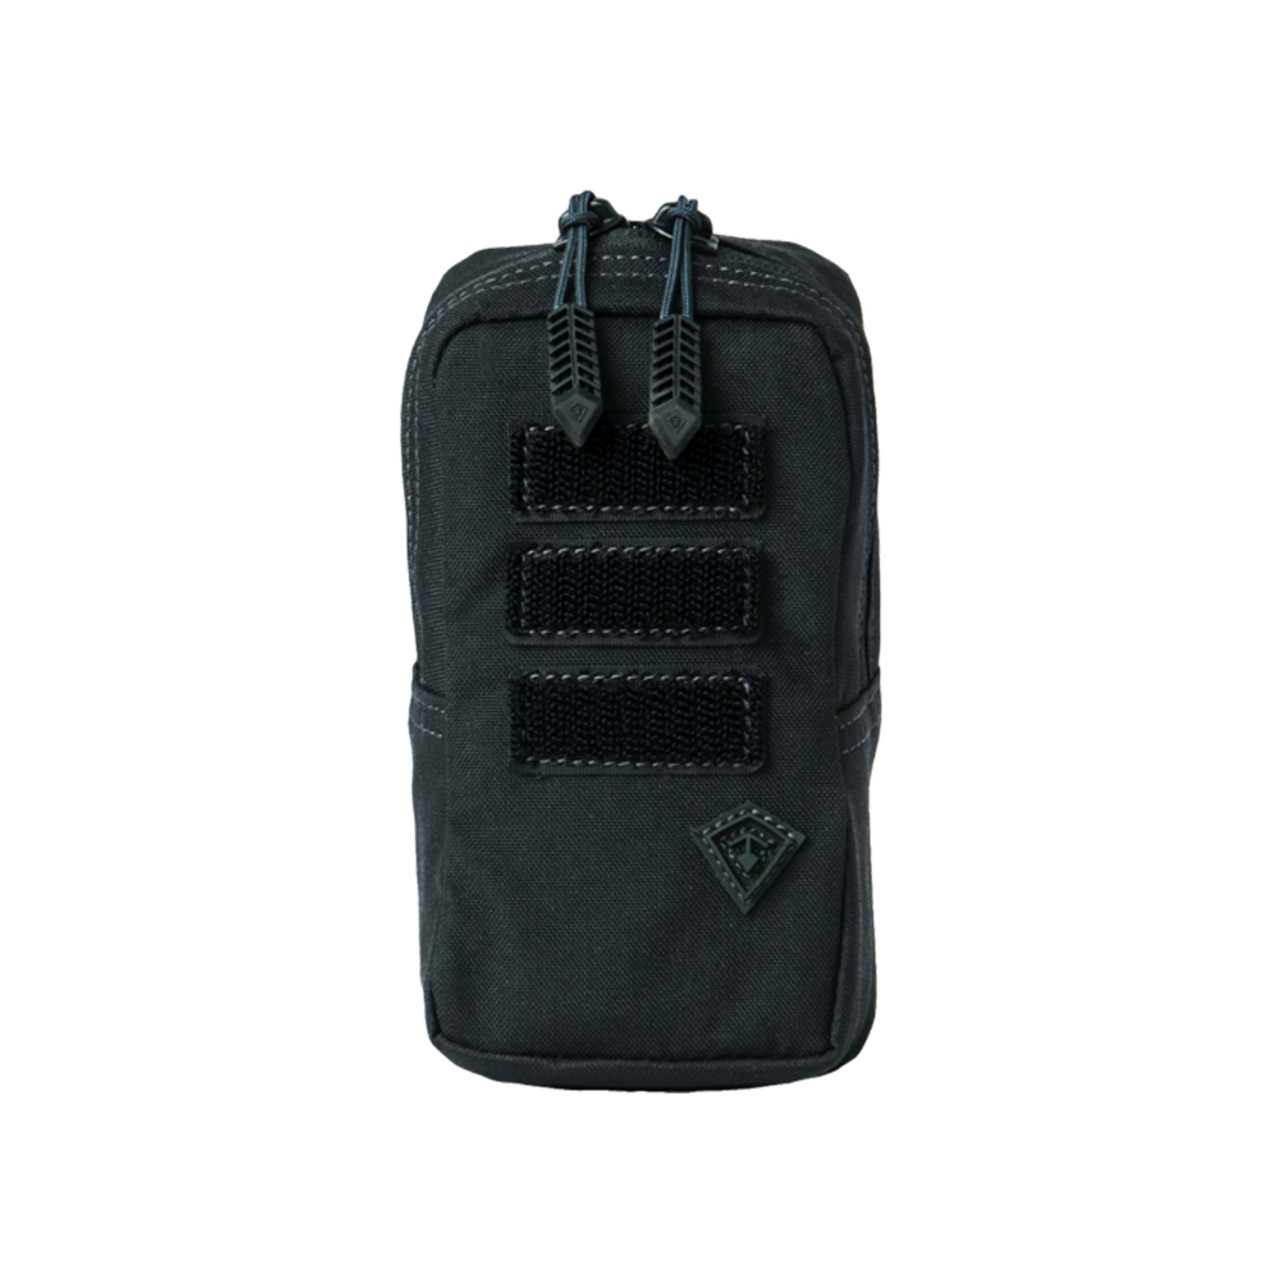 First Tactical Tactix 9x6 Utility Pouch Large Nylon MOLLE Police Pocket Black